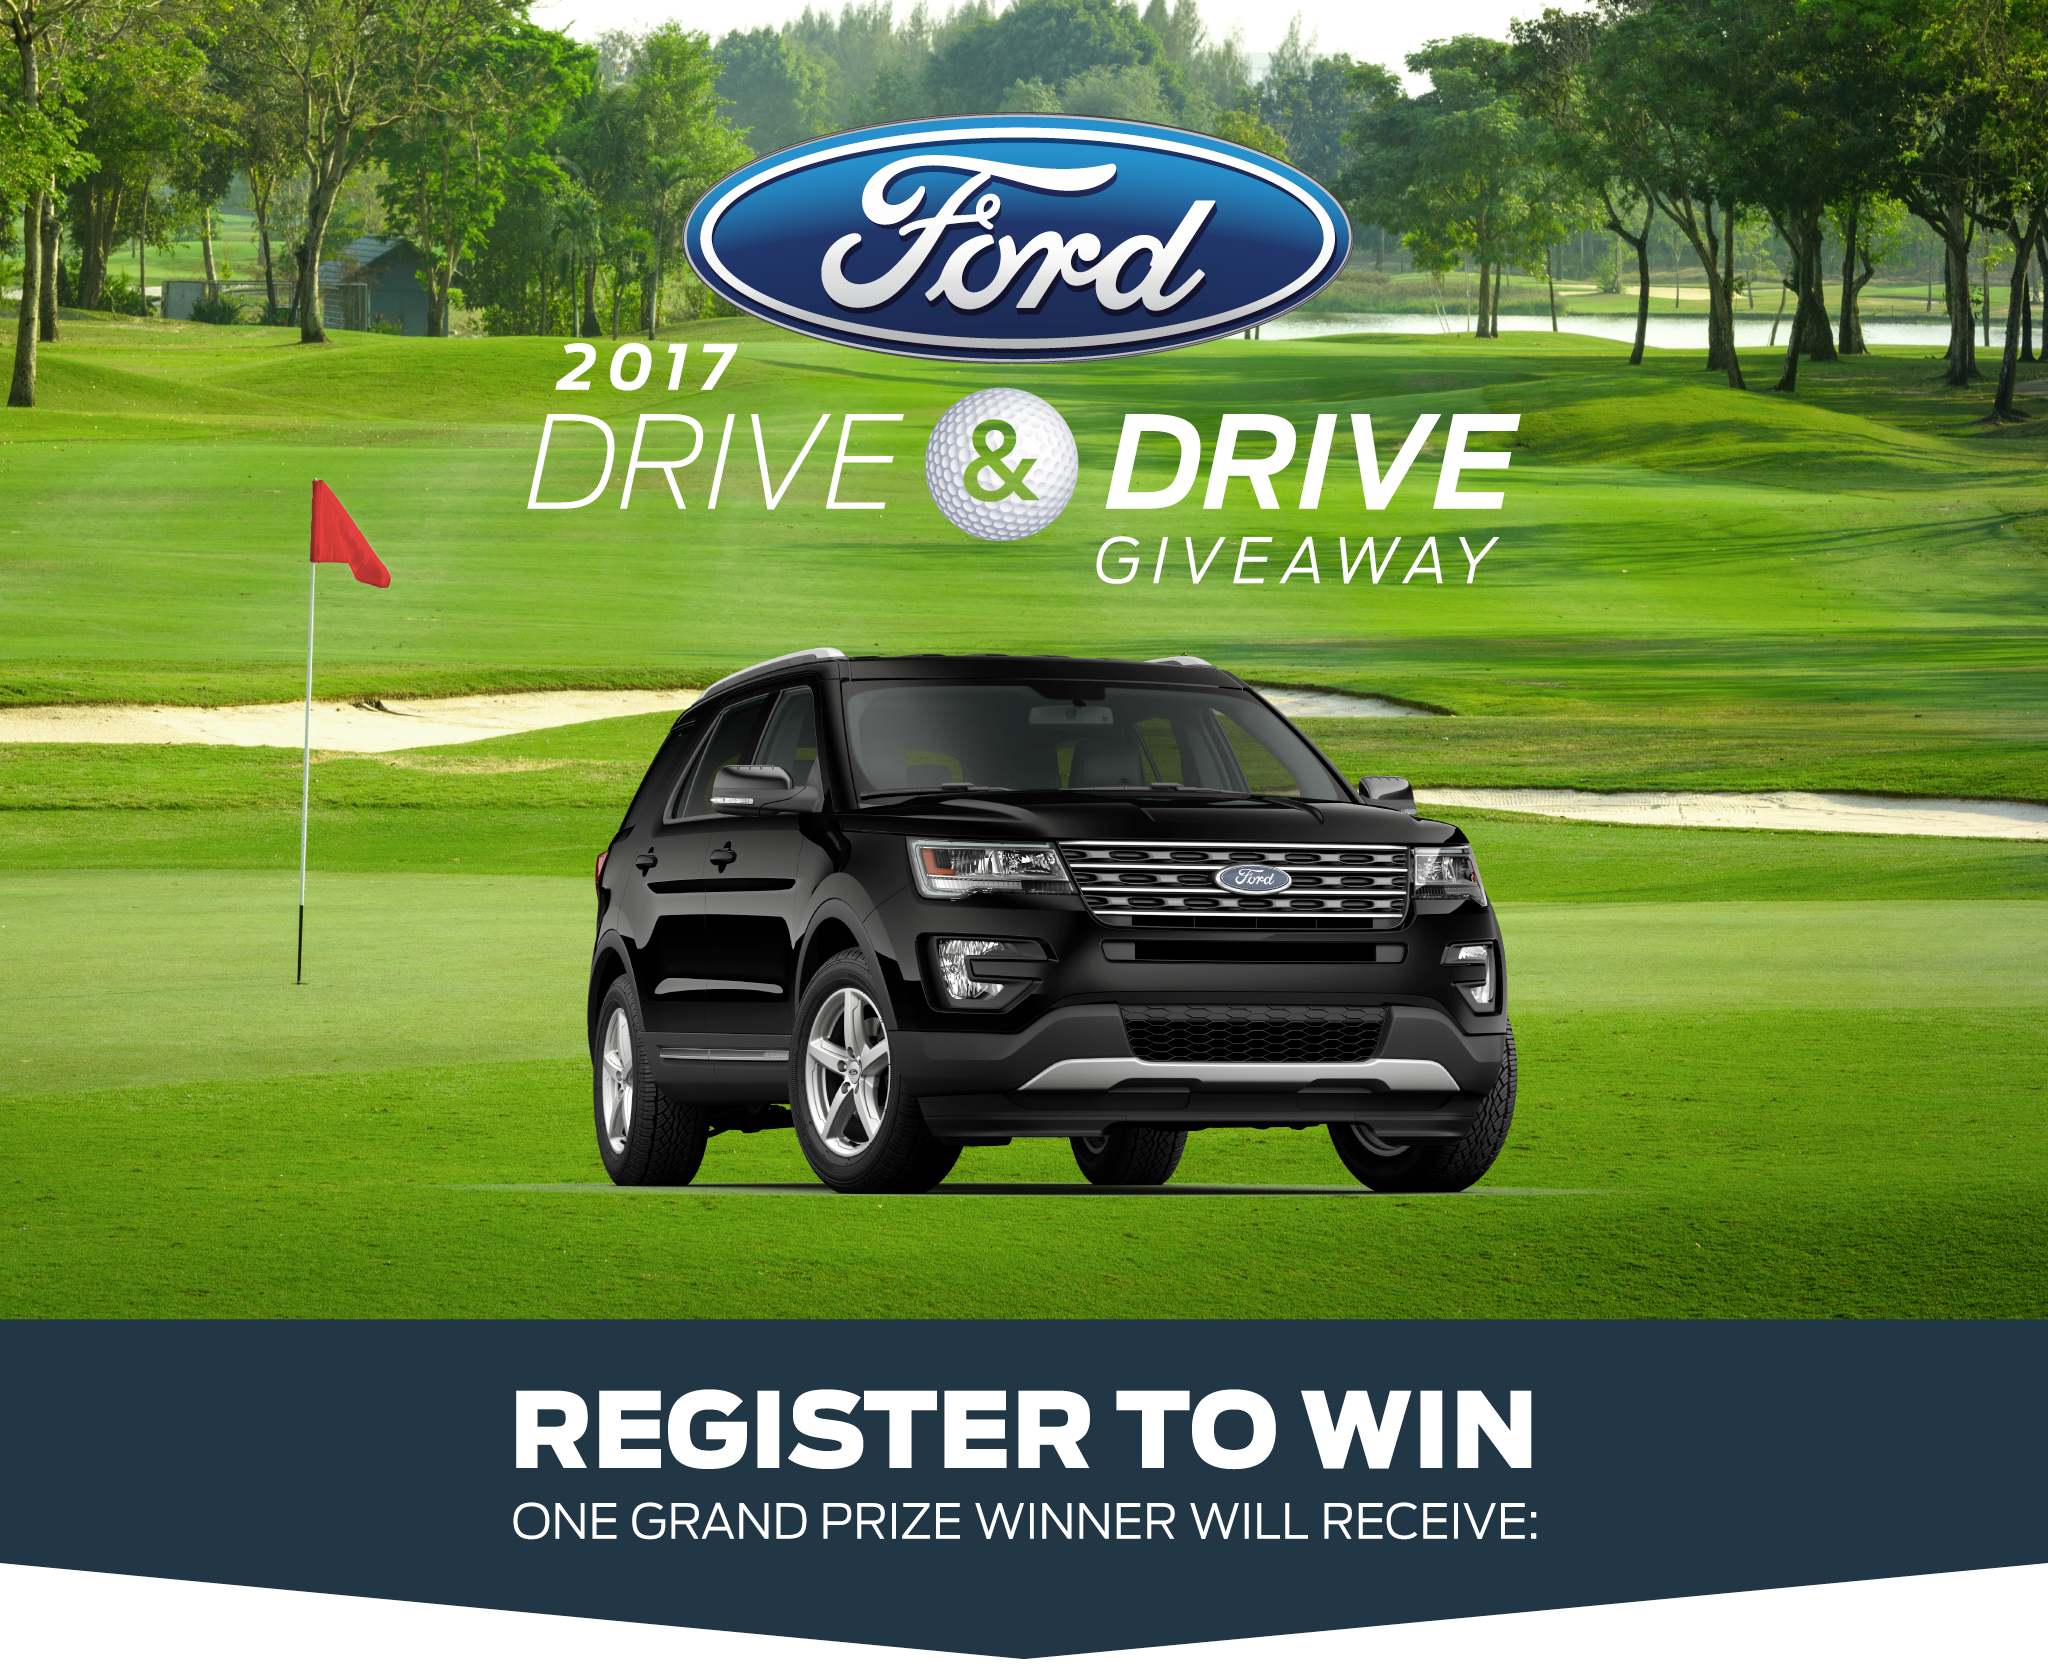 2017 Ford Drive and Drive Giveaway